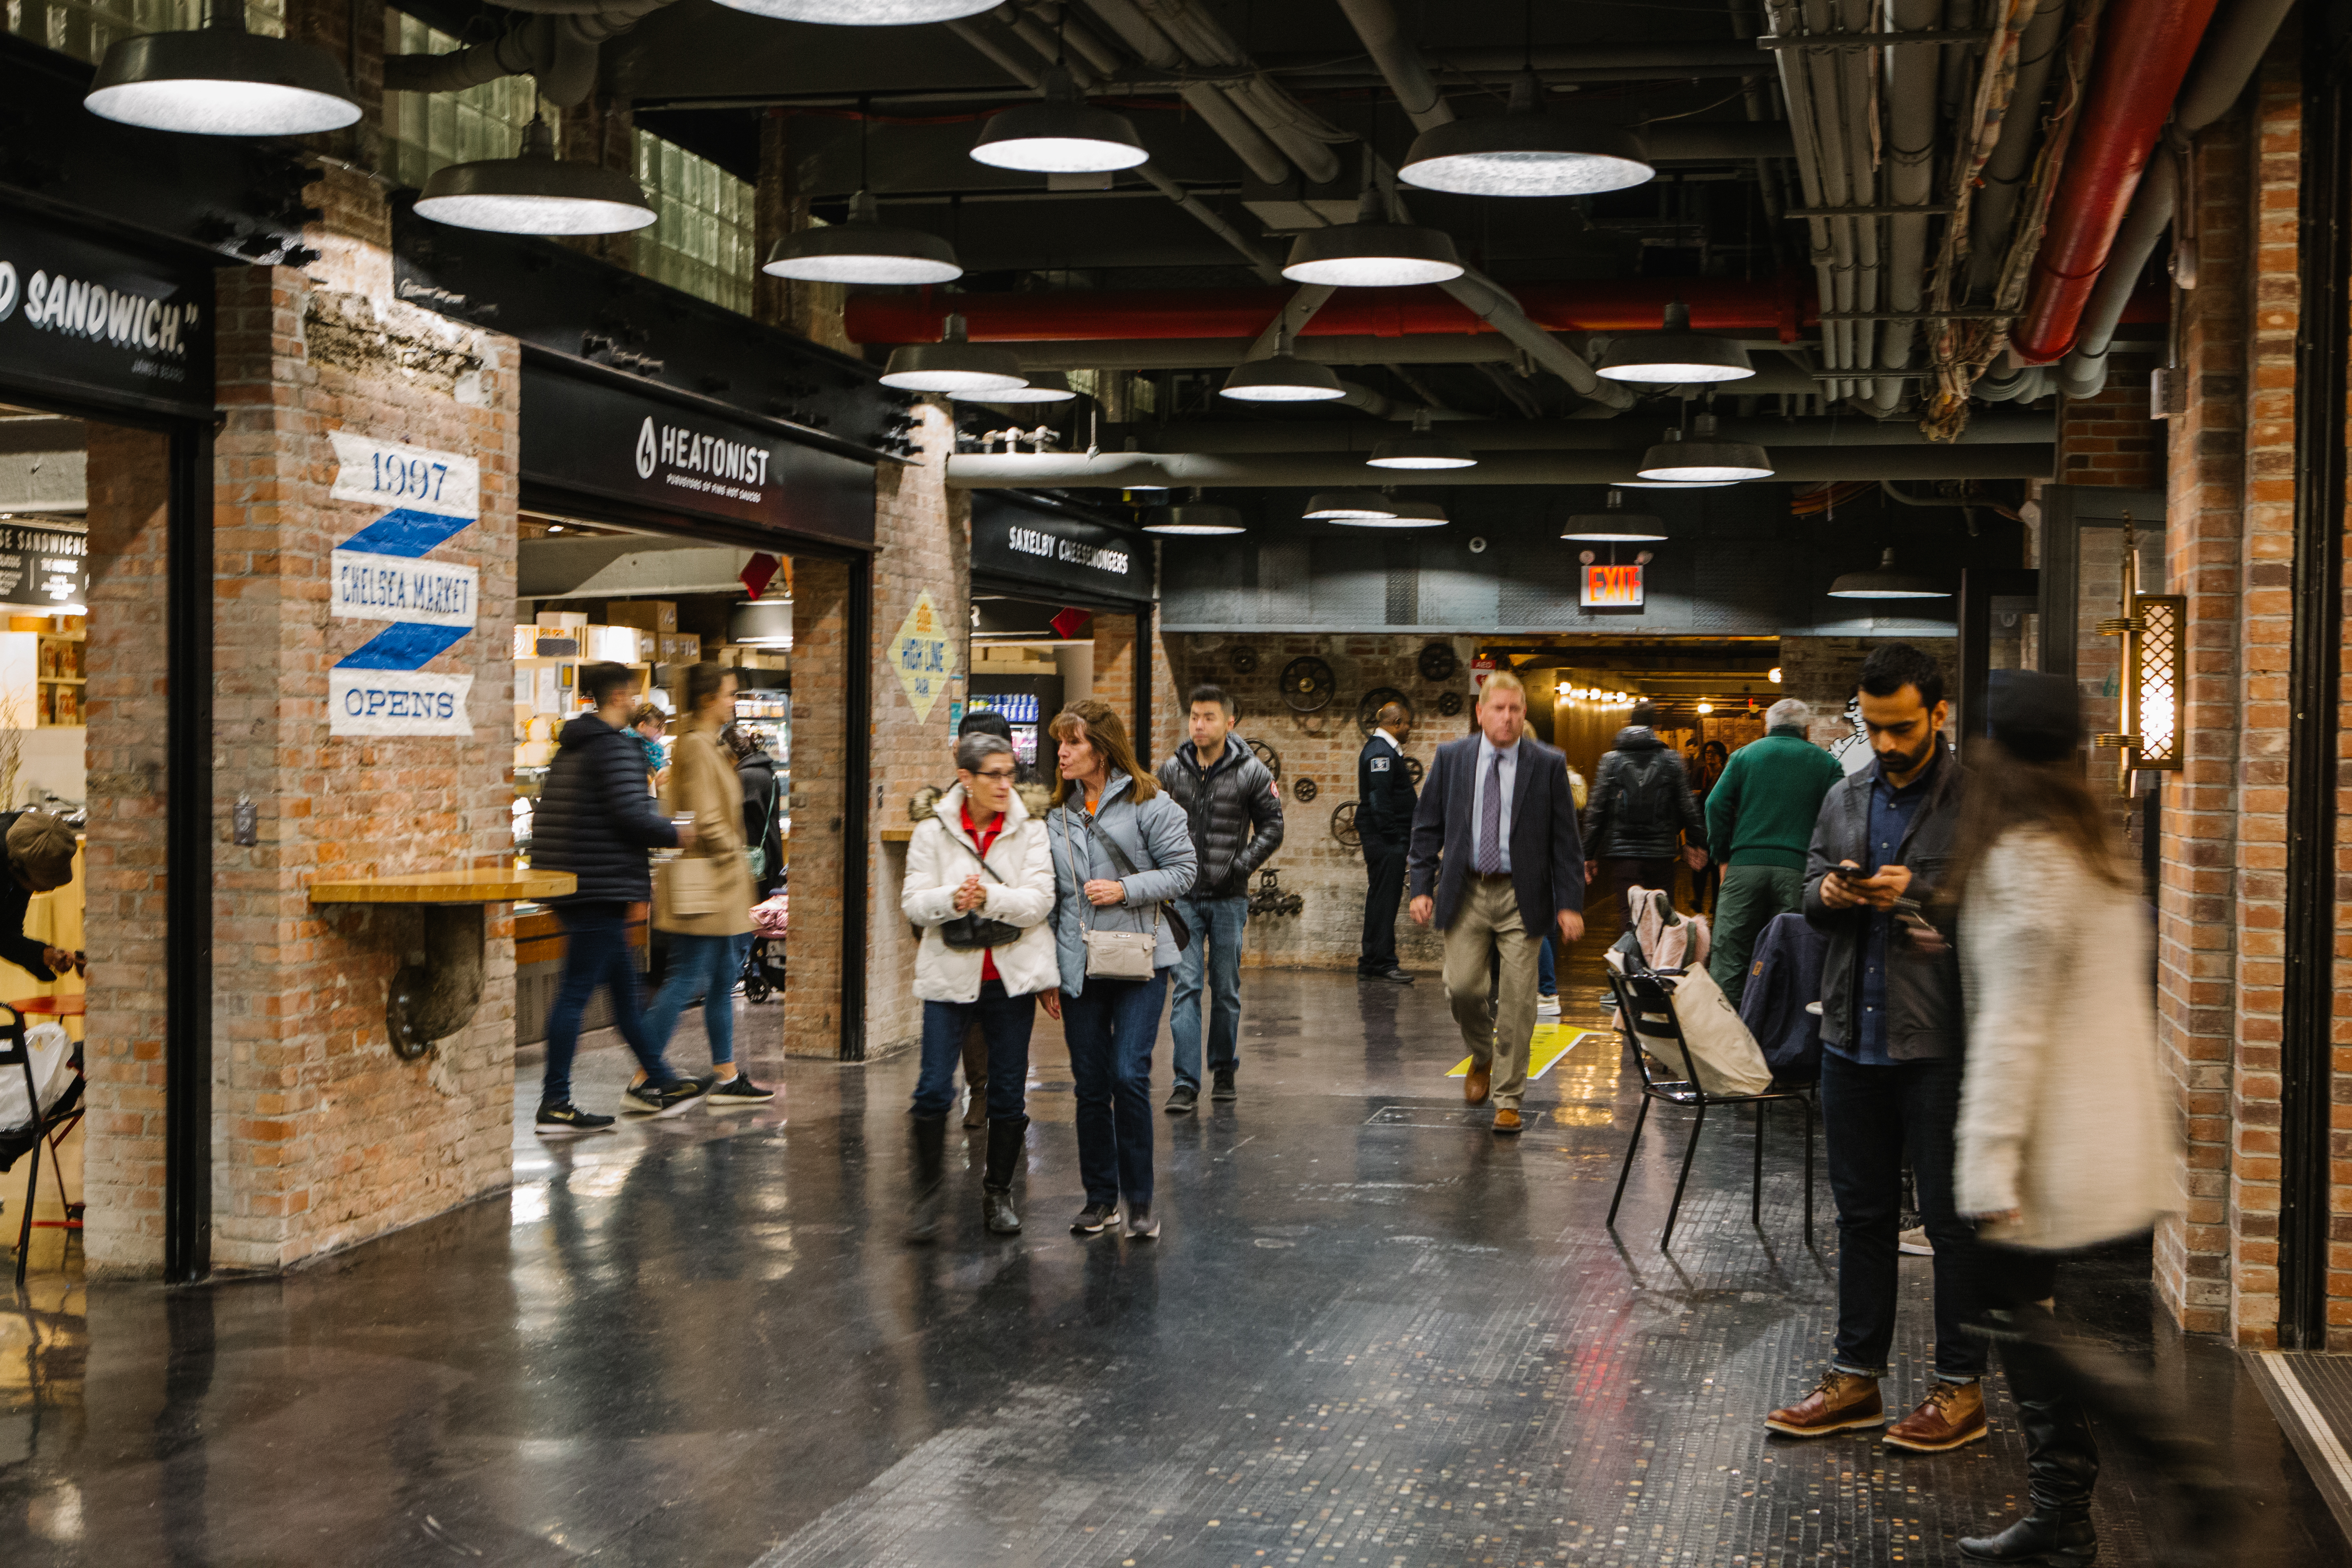 People walking through the downstairs area of Chelsea Market